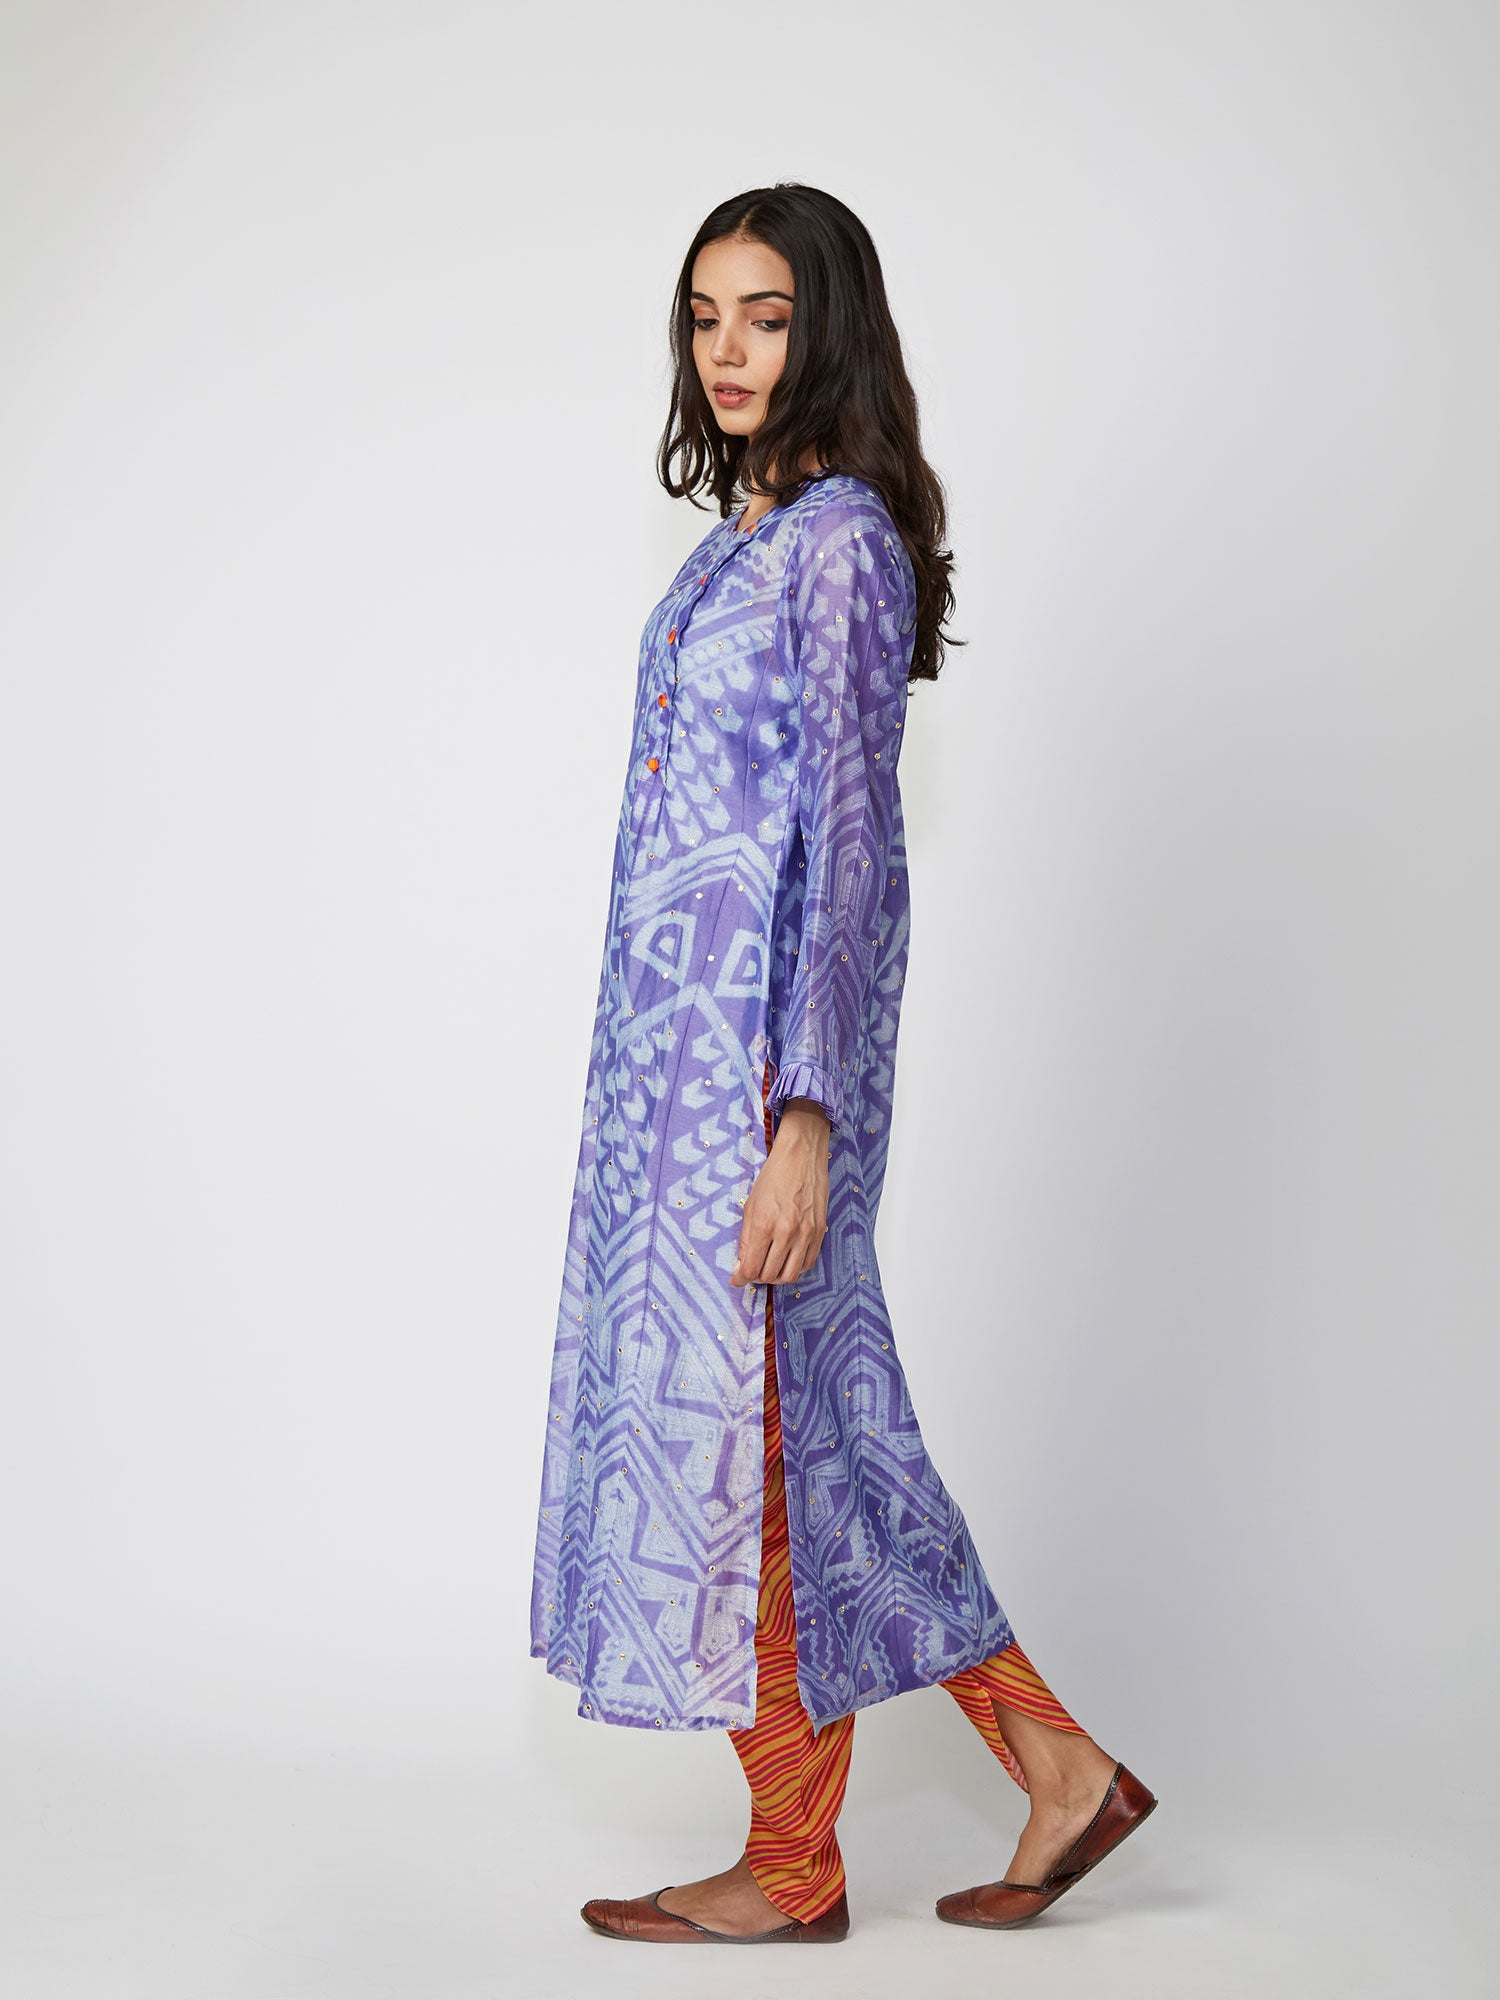 kurta, chanderi, printed, aline, grey, straight, PURPLE, violet